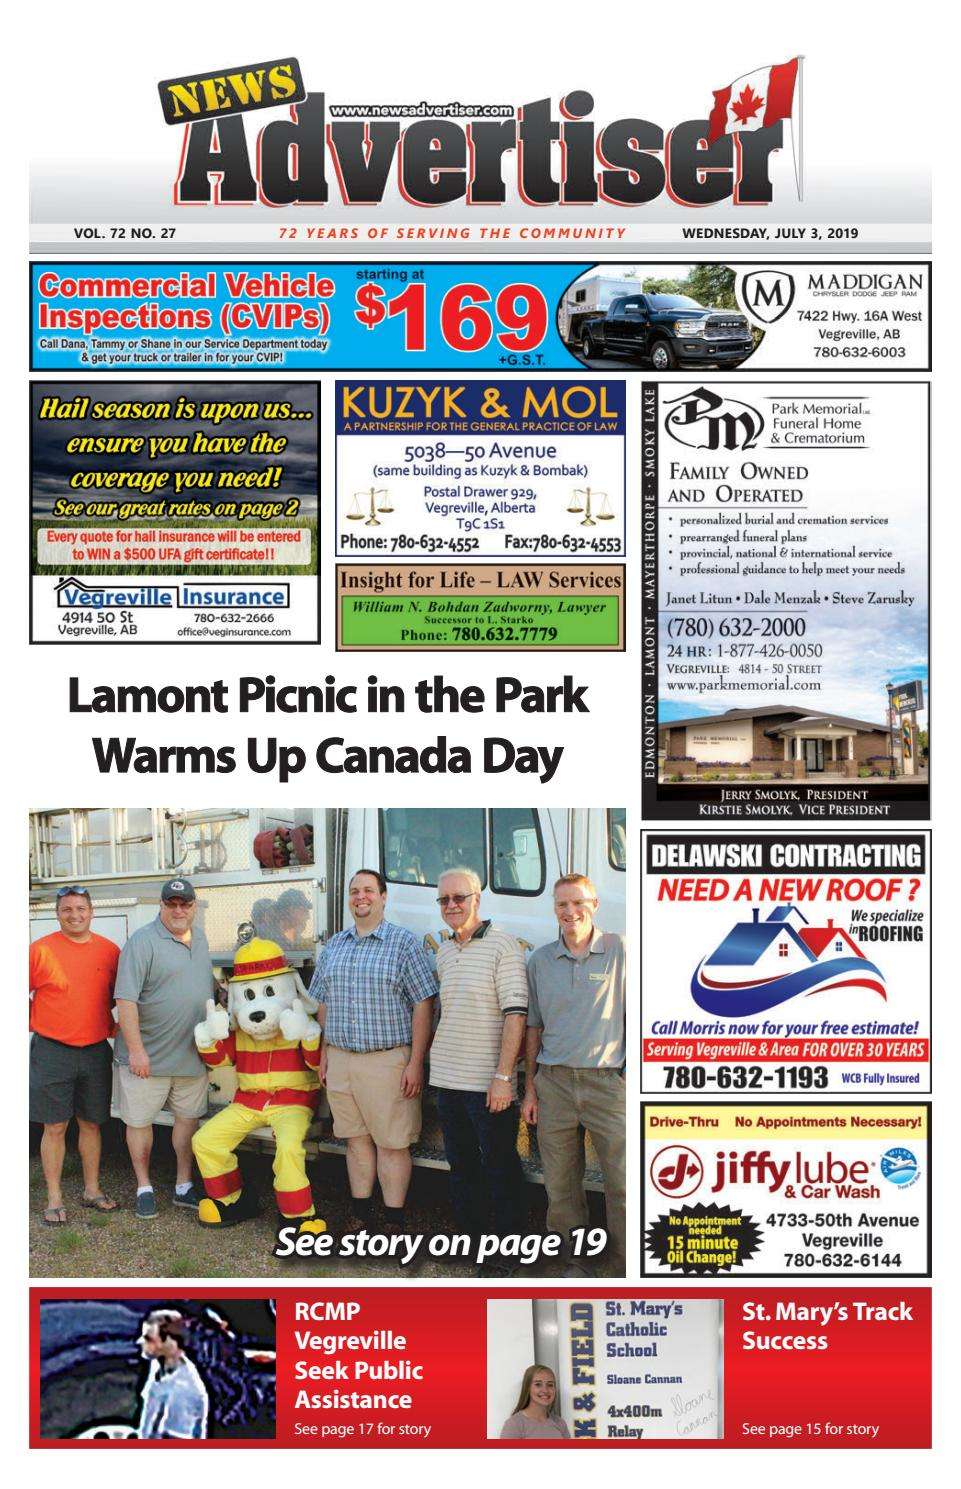 Vegreville News Advertiser - July 3, 2019 by The News